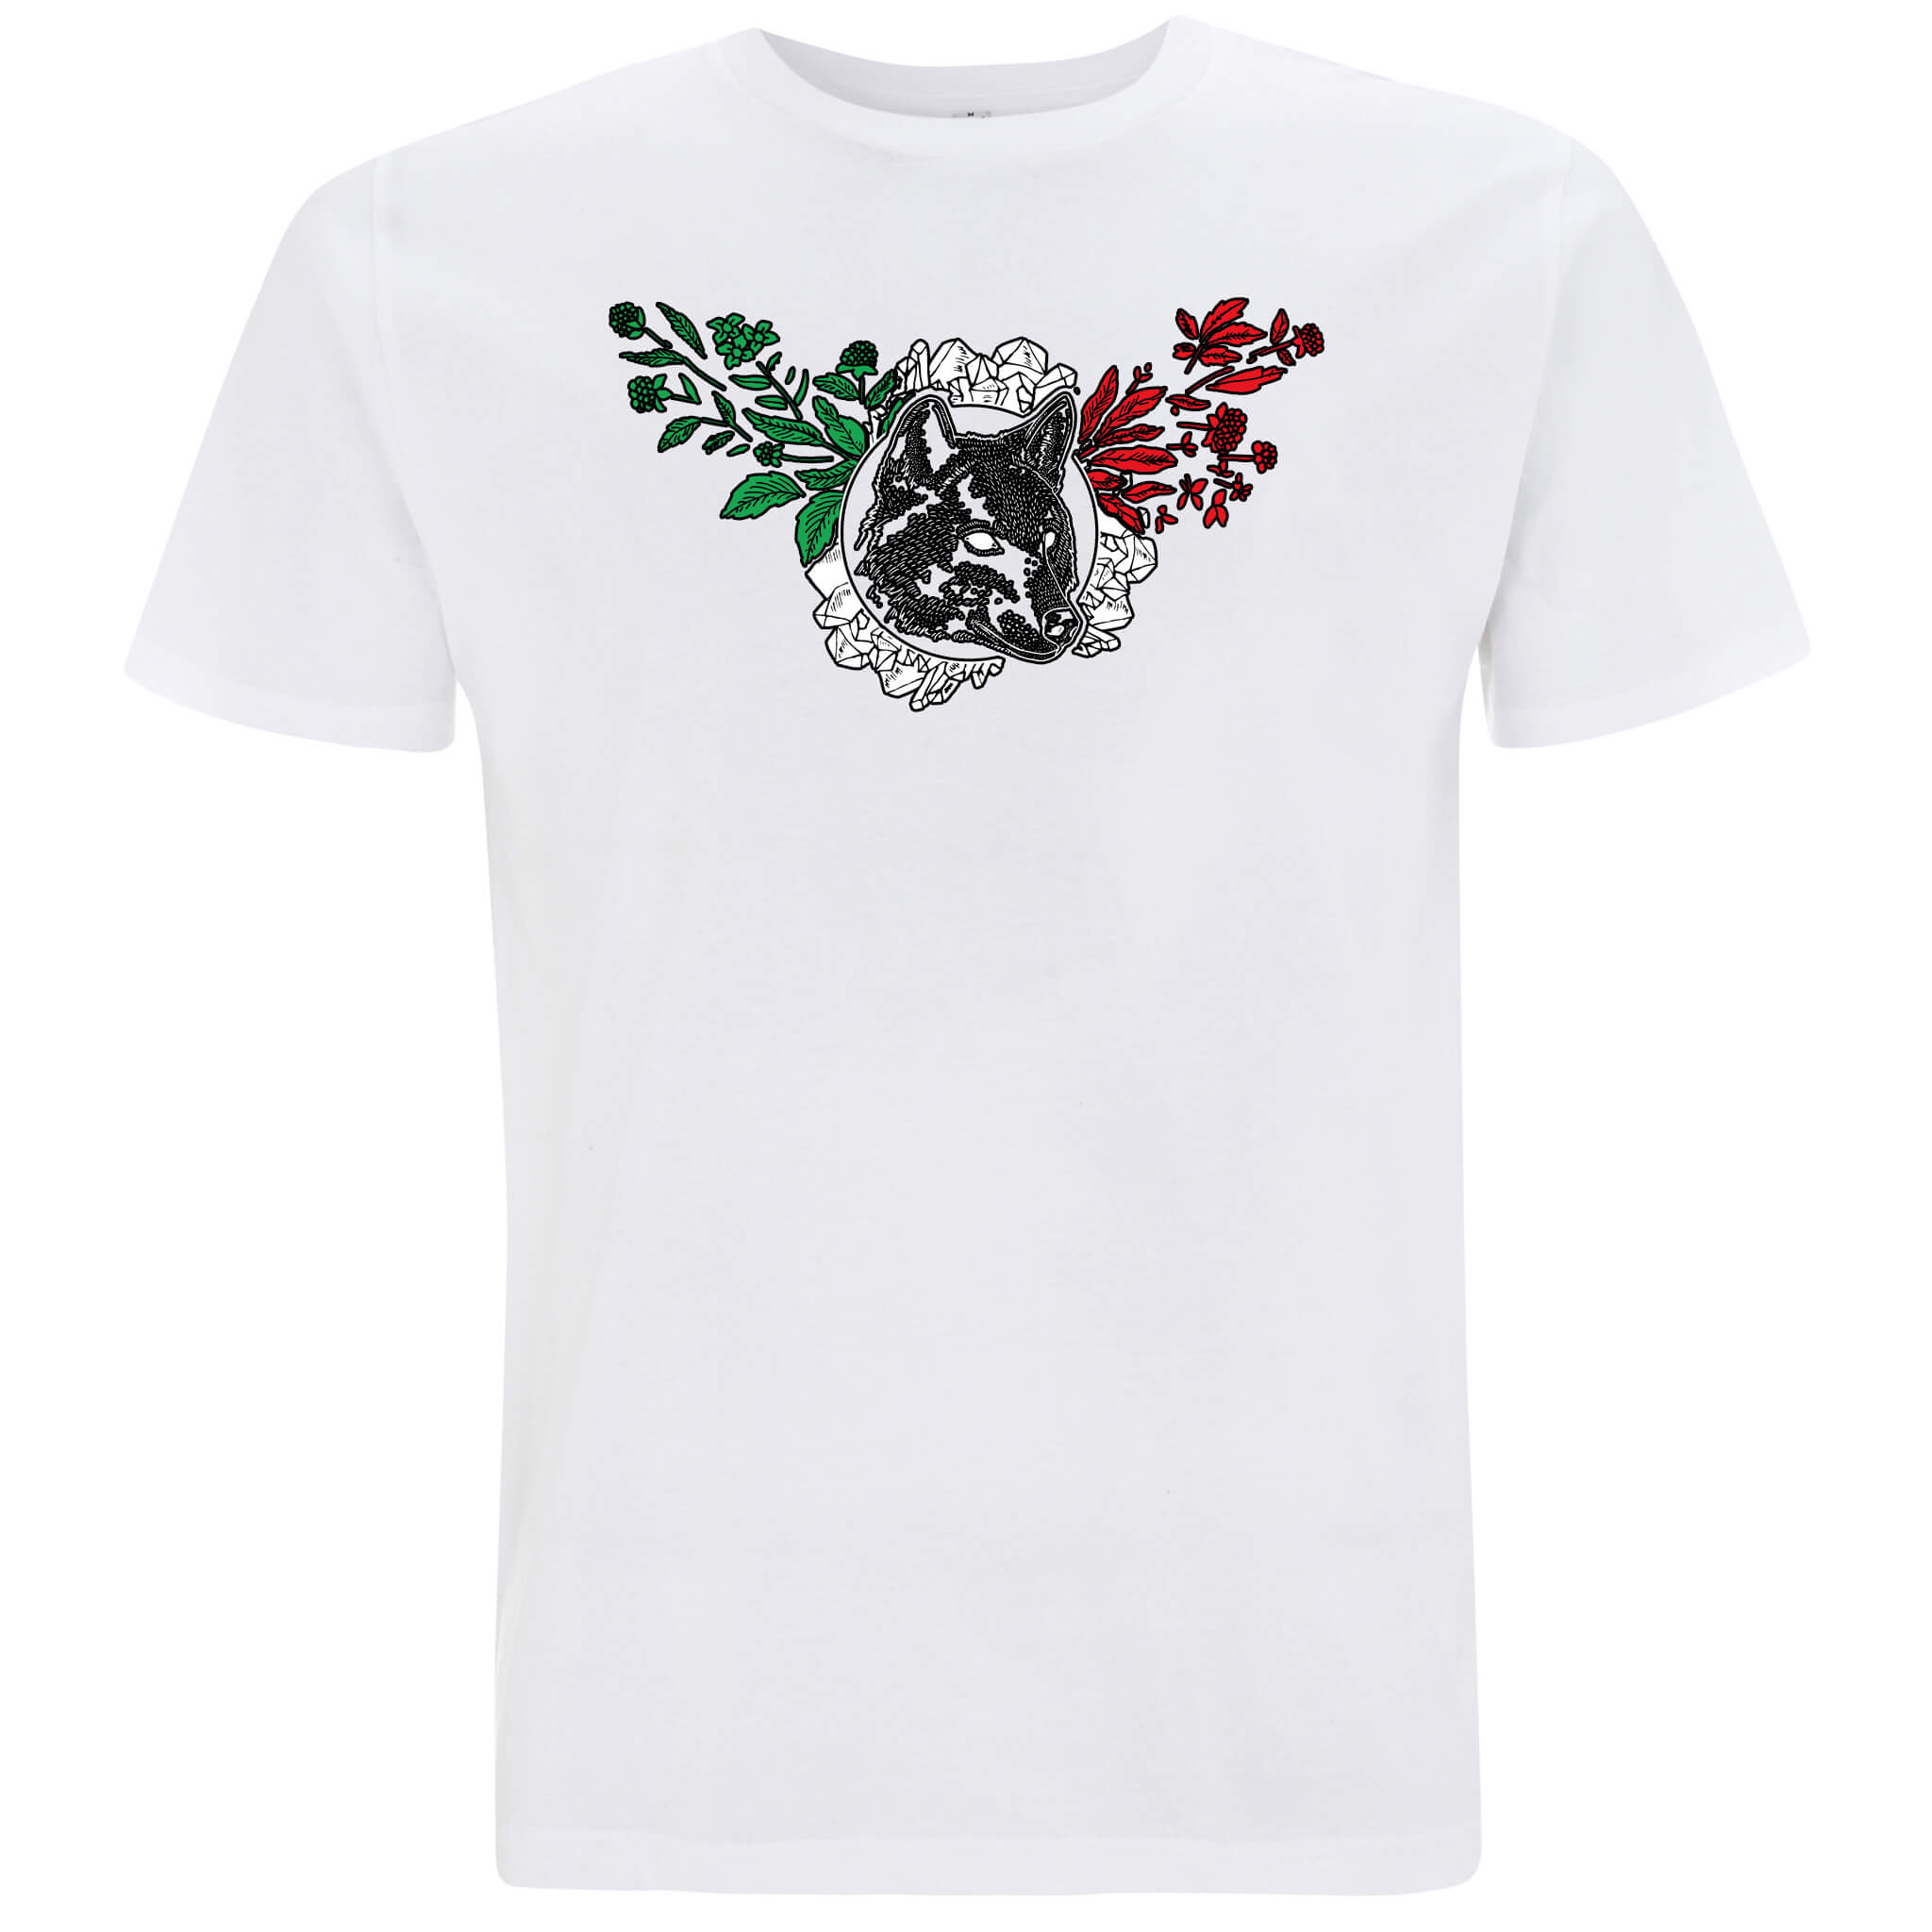 Internazionale Italia - T-shirt Uomo - T-Shirt by Fol The Brand